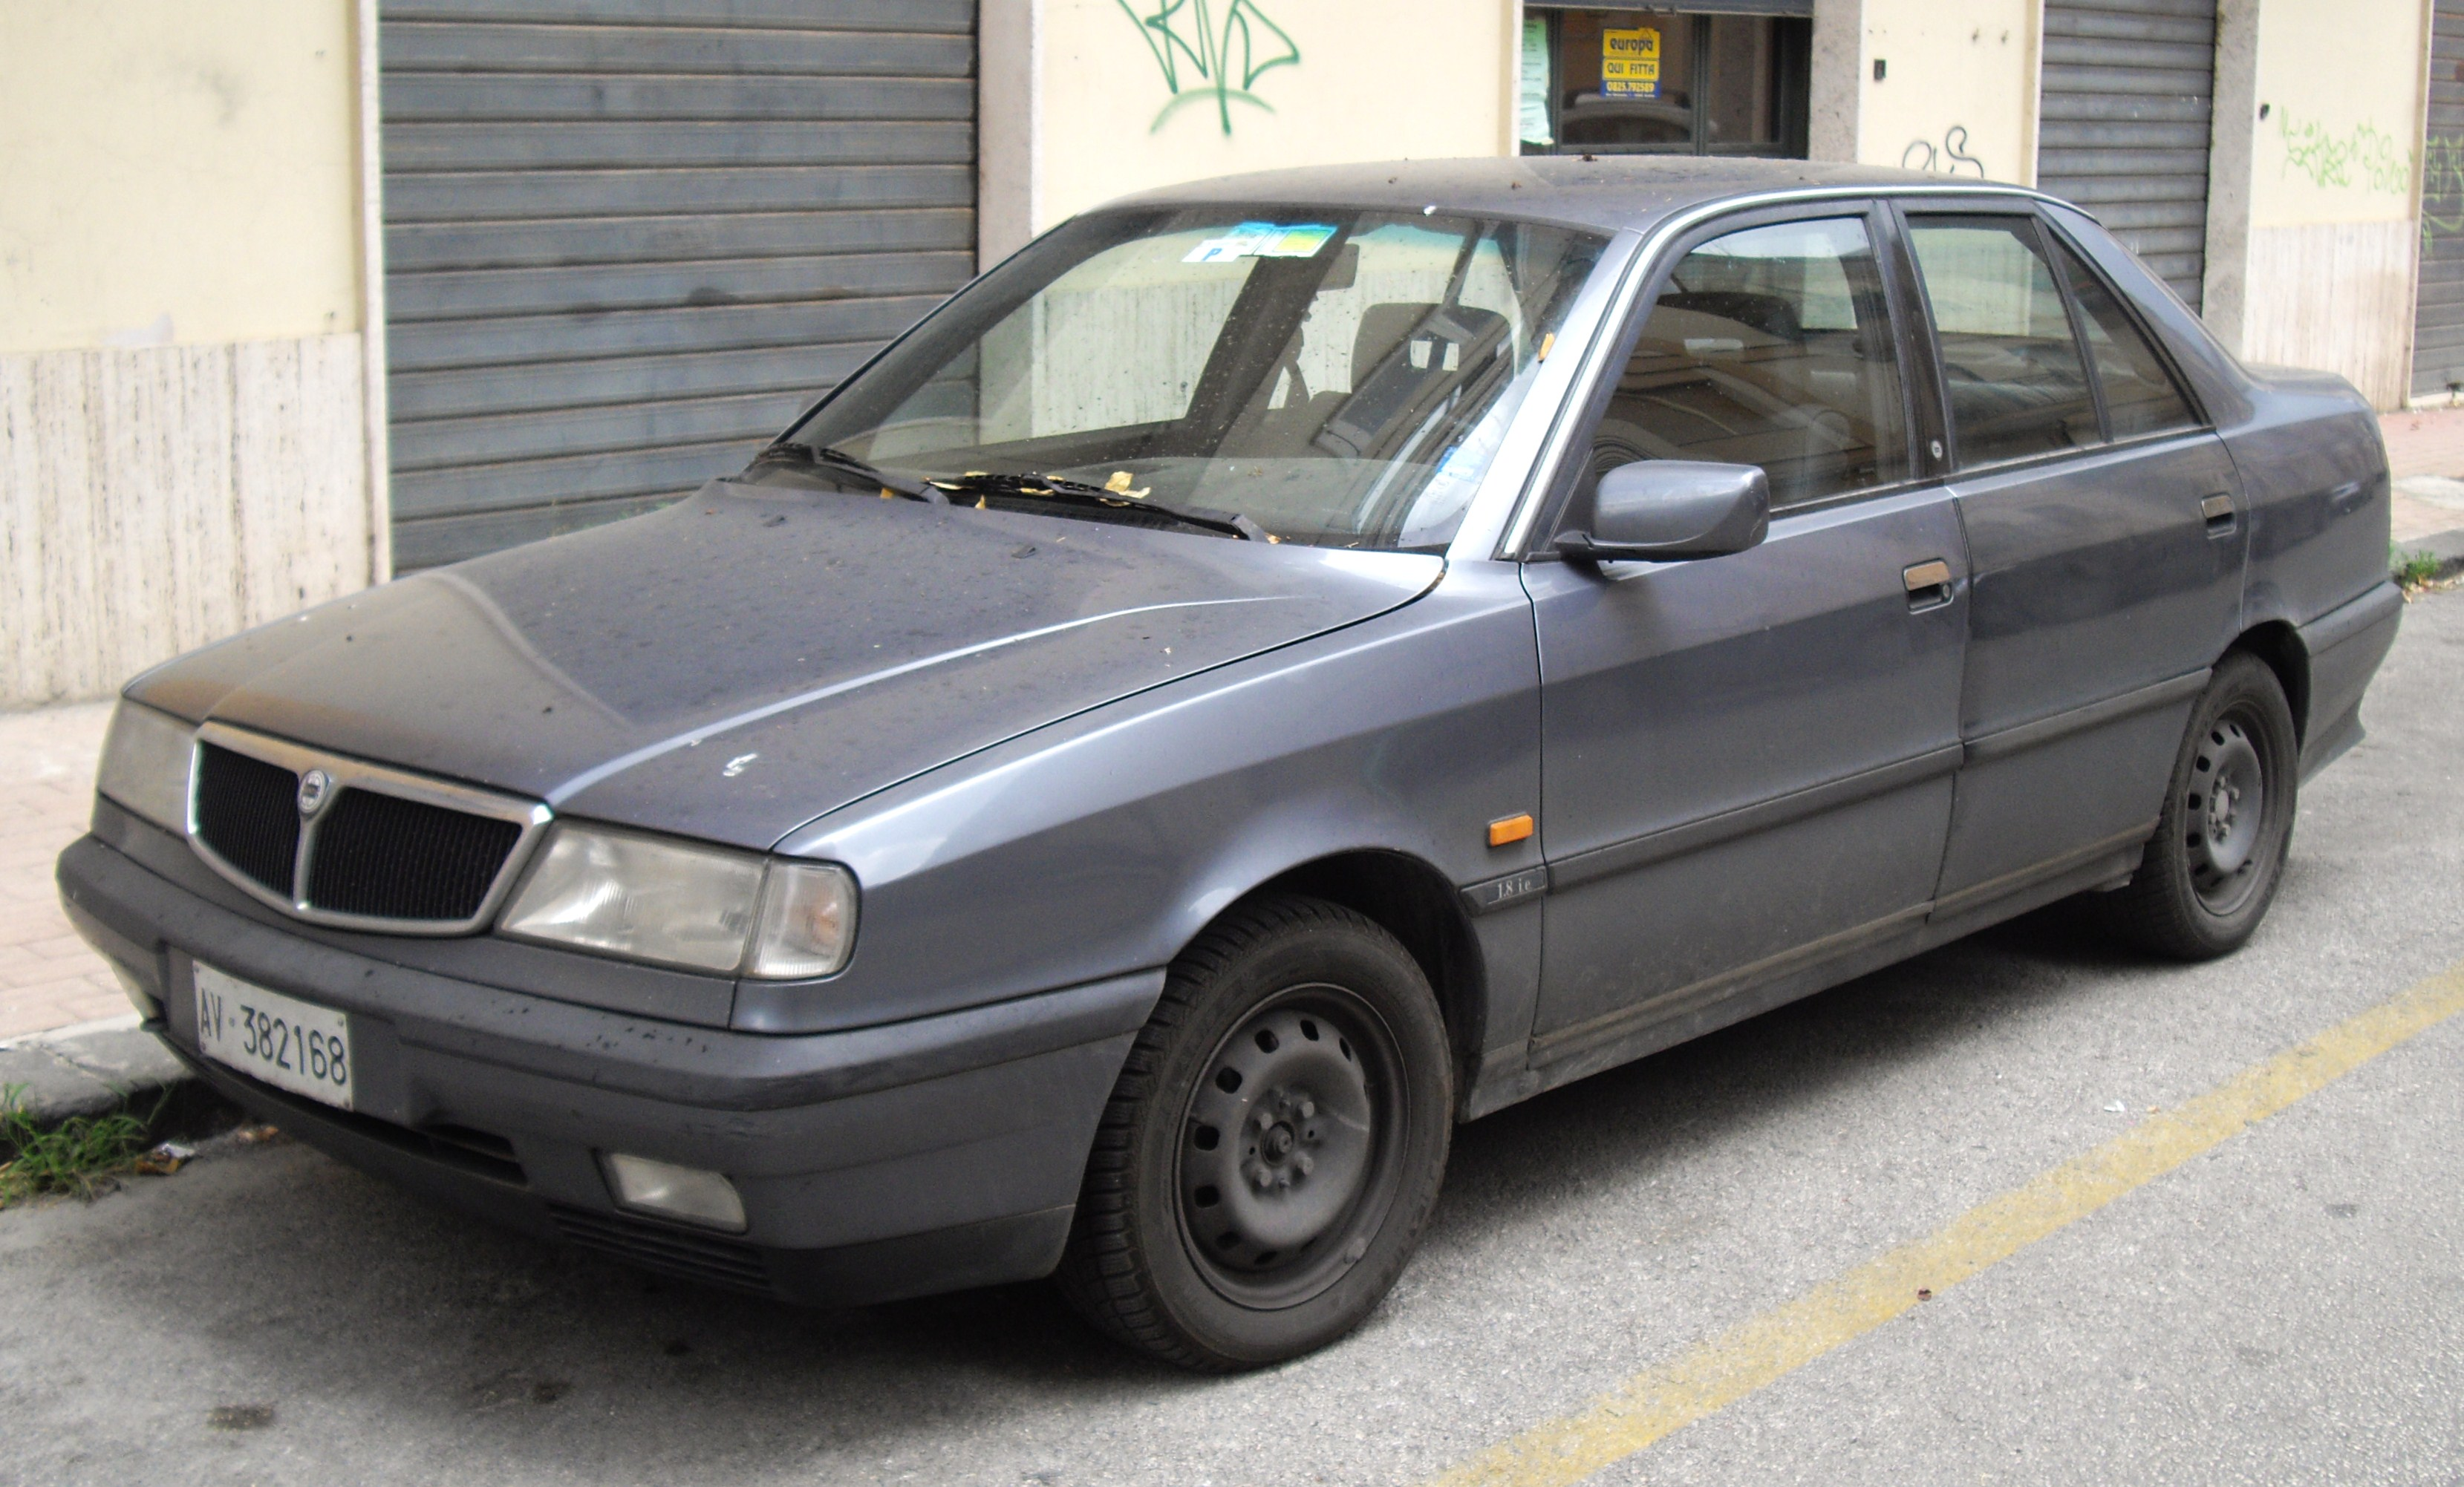 http://auto-database.com/image/lancia-dedra-station-wagon-835-1997-images-176588.jpg